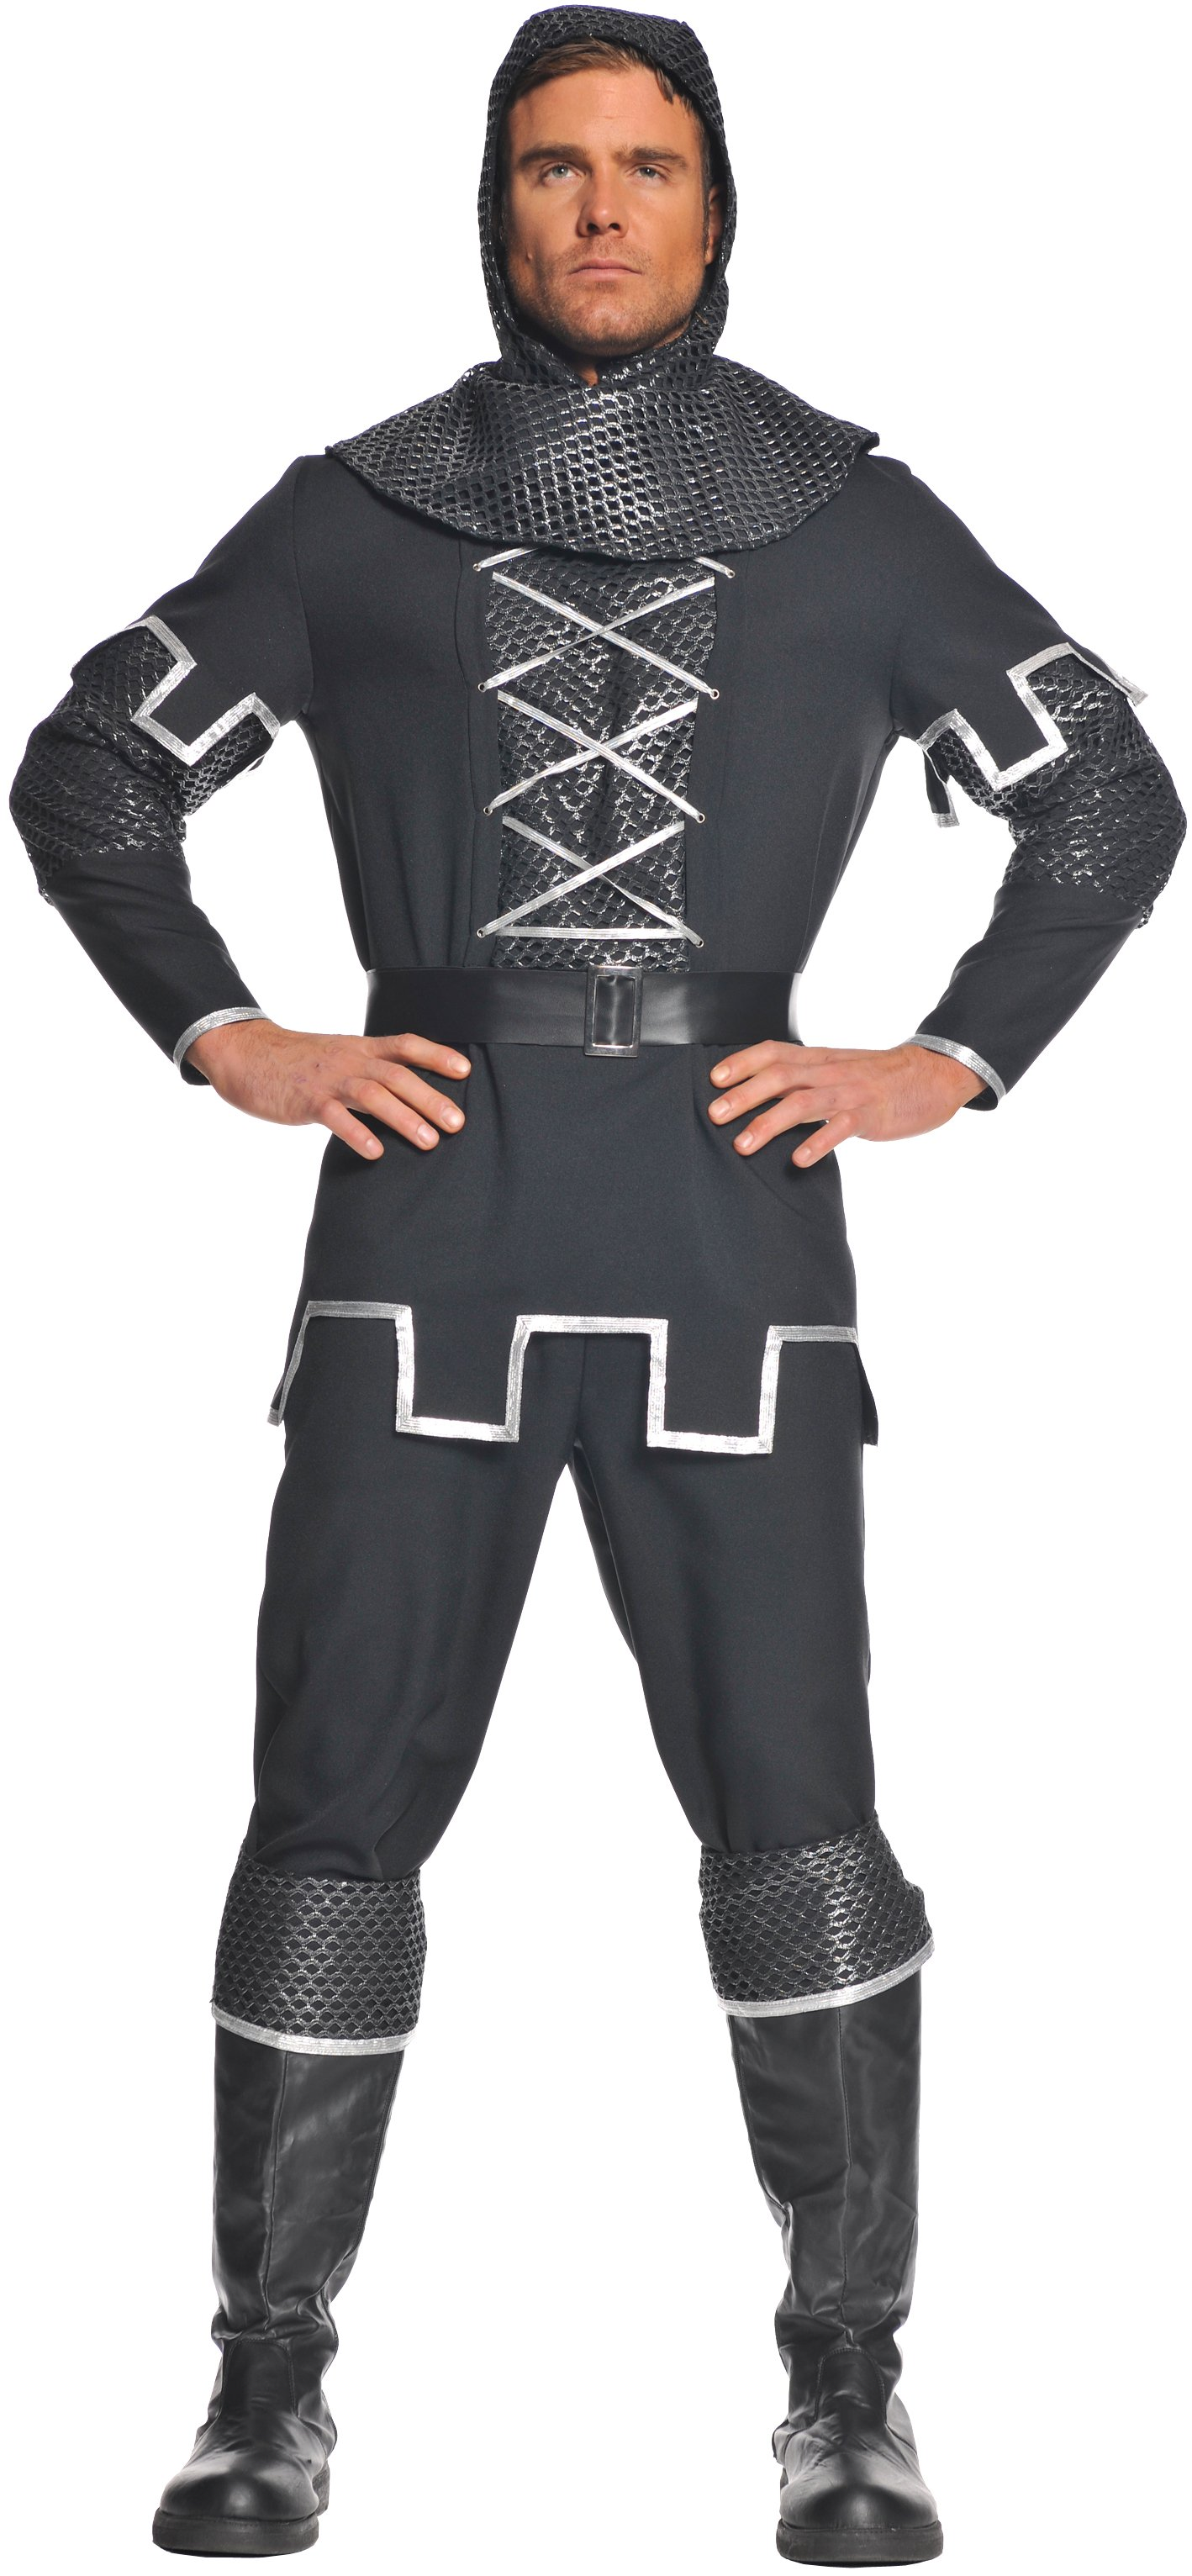 Knight Plus Adult Costume